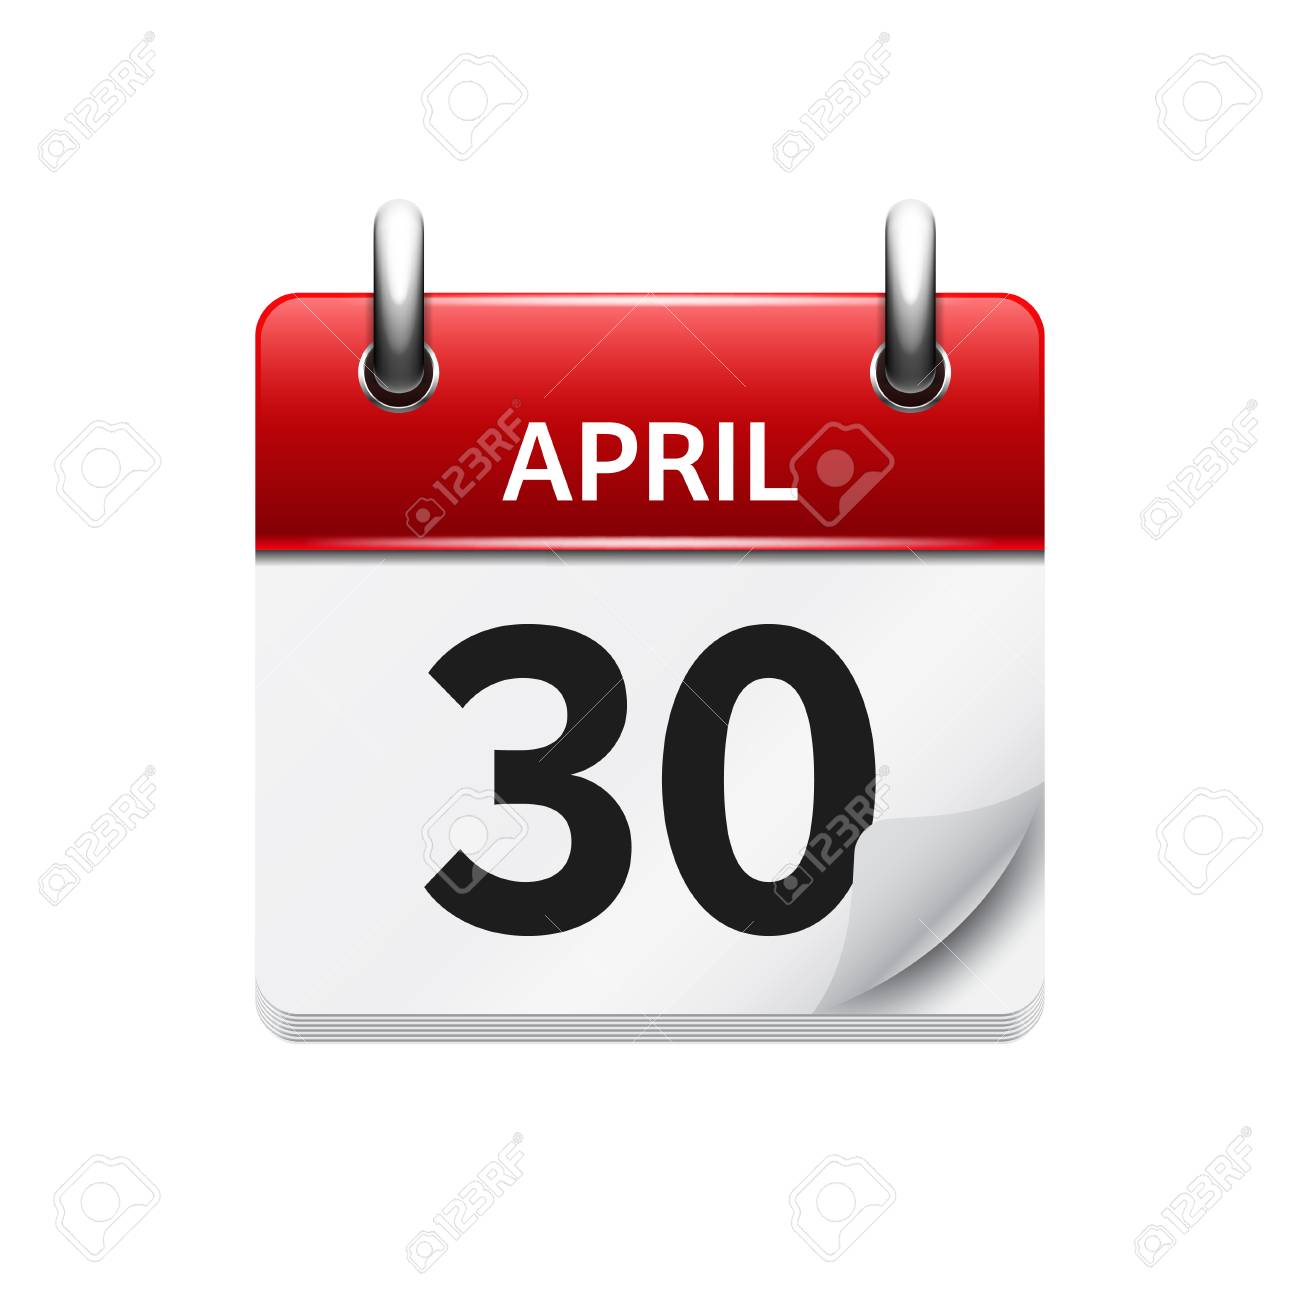 April 30. Vector flat daily calendar icon. Date and time, day, month. Holiday. - 54049049